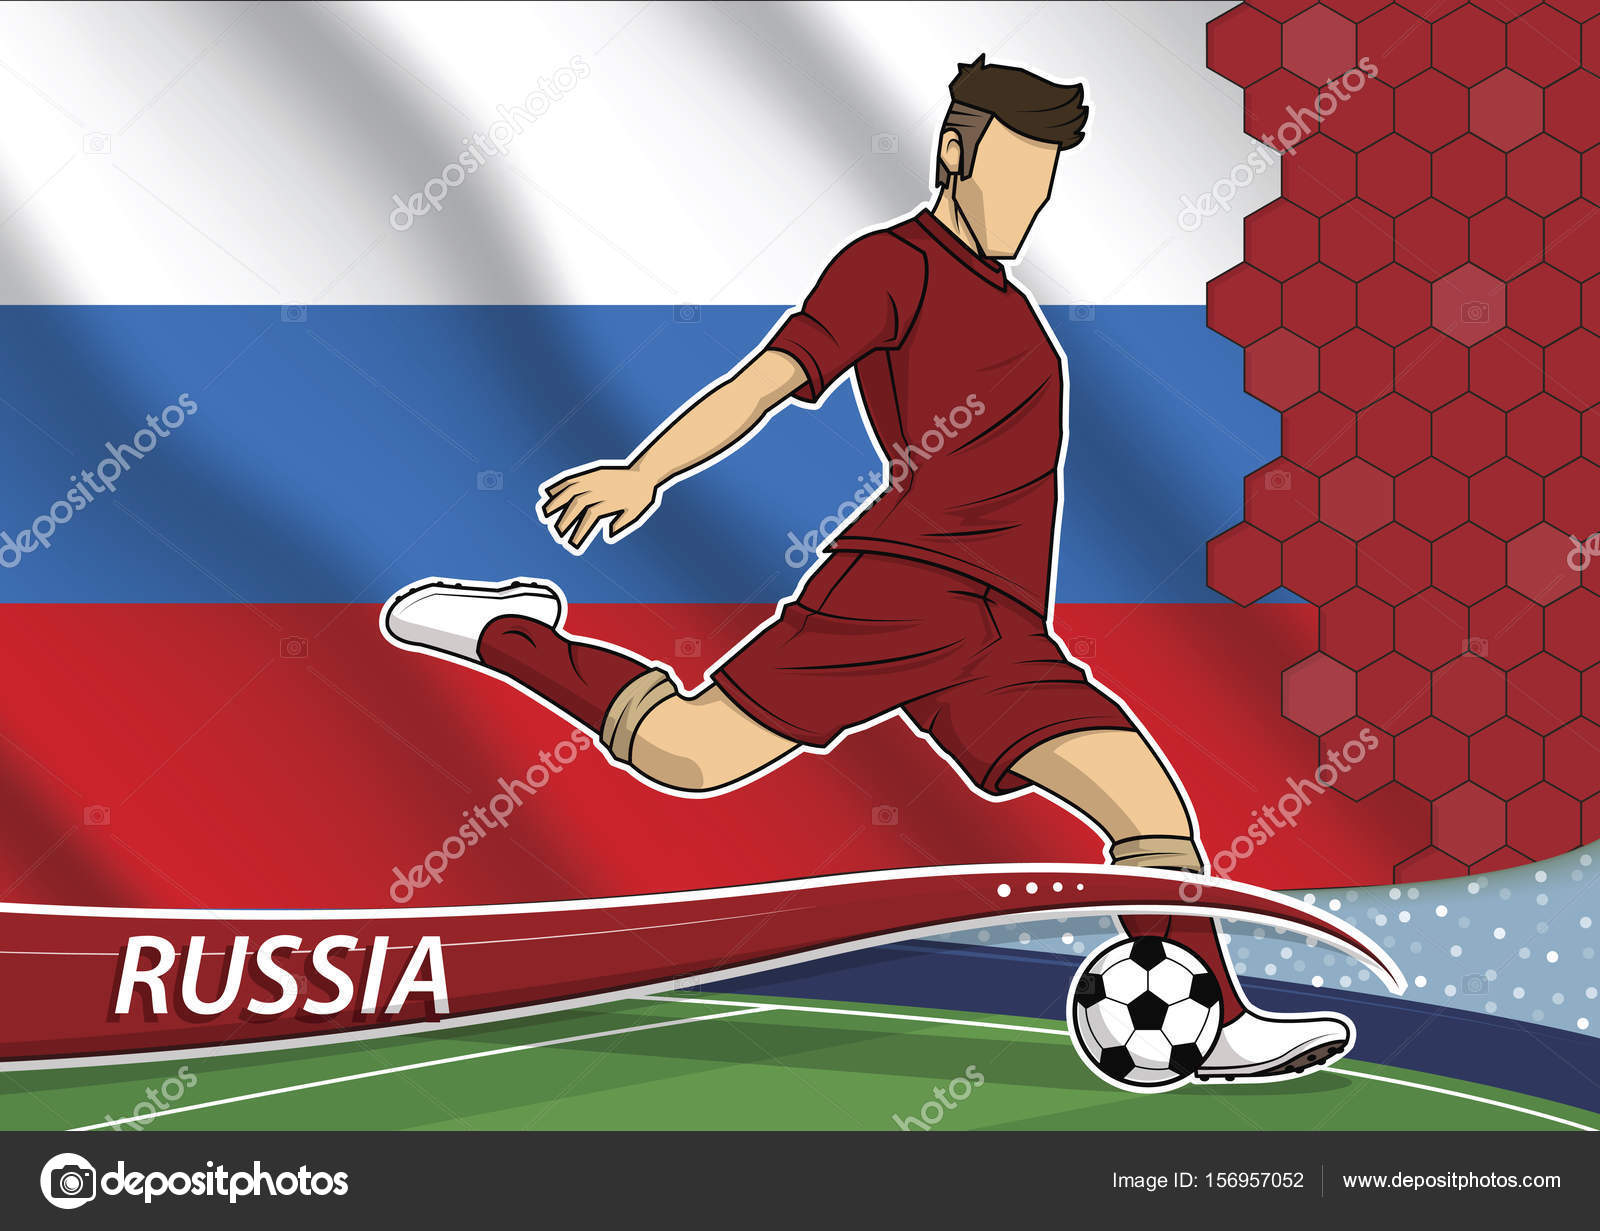 d53d6d2556f Vector illustration of football player shooting on goal. Soccer team player  in uniform with state national flag of Russia.